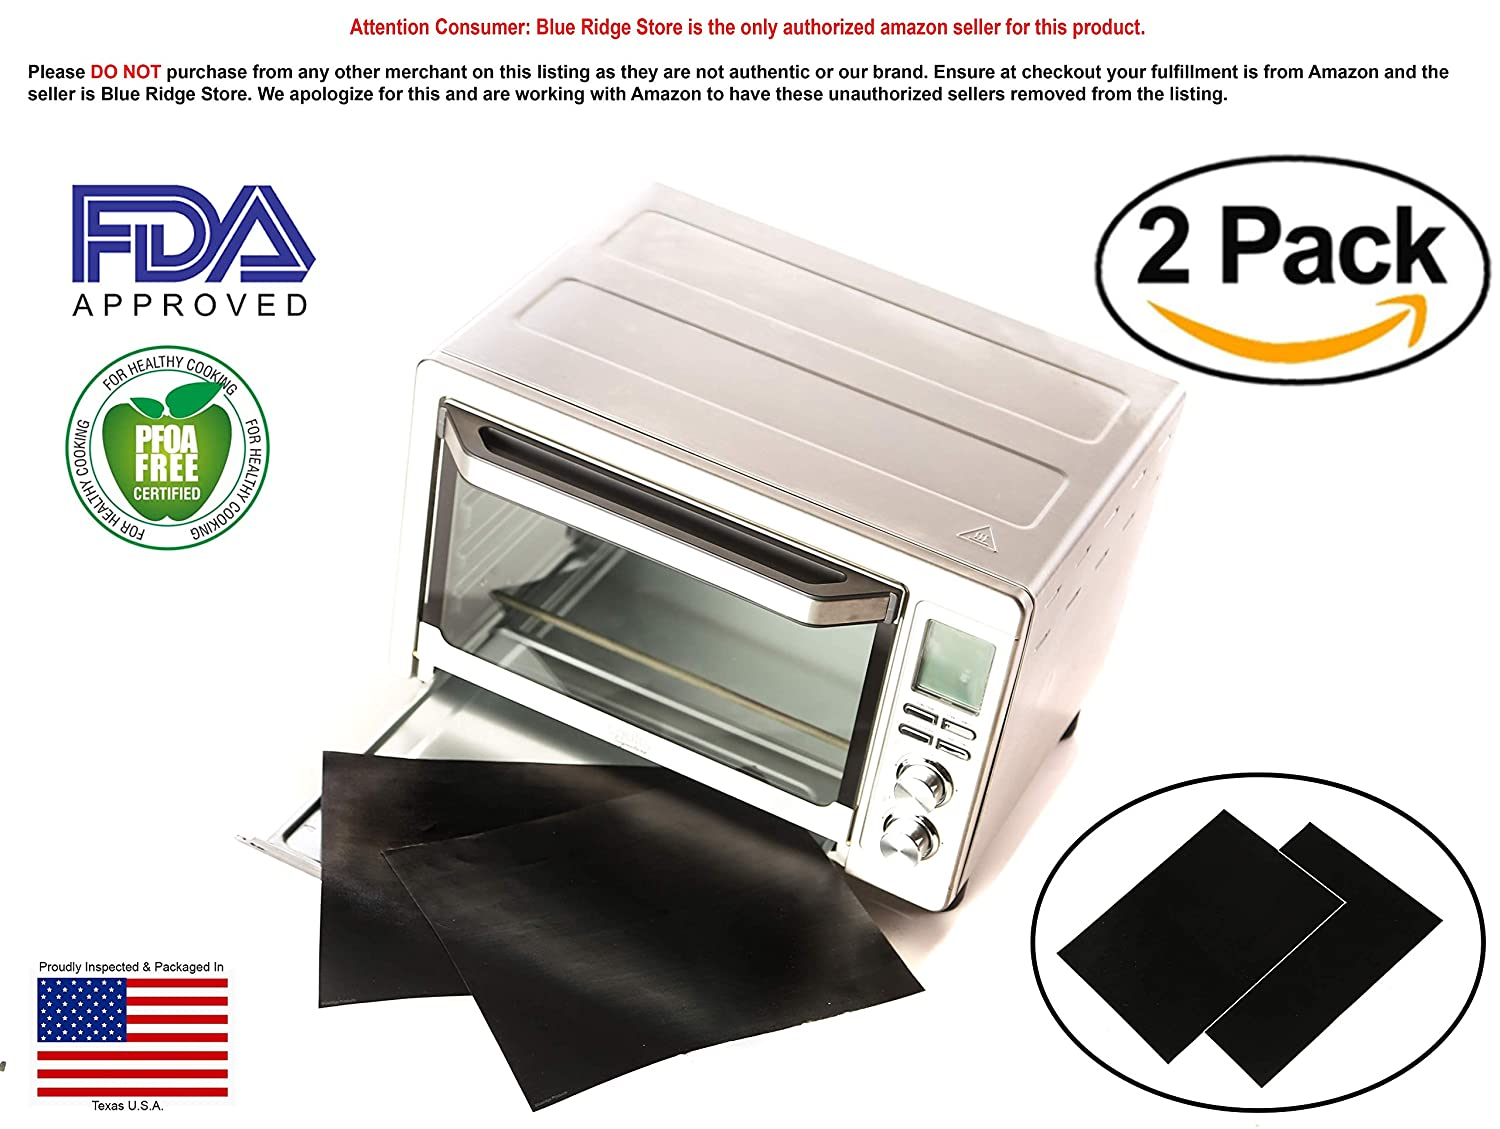 "TWO-PACK 100% Non-Stick 11"" Toaster Oven Liner. Finally, Prevent Spillovers, Gunk & Odors! Great Teflon Liner for Large and Small Toaster Ovens, Dishwasher Safe, Best Toaster Oven Accessories JB Warehouse Deals"